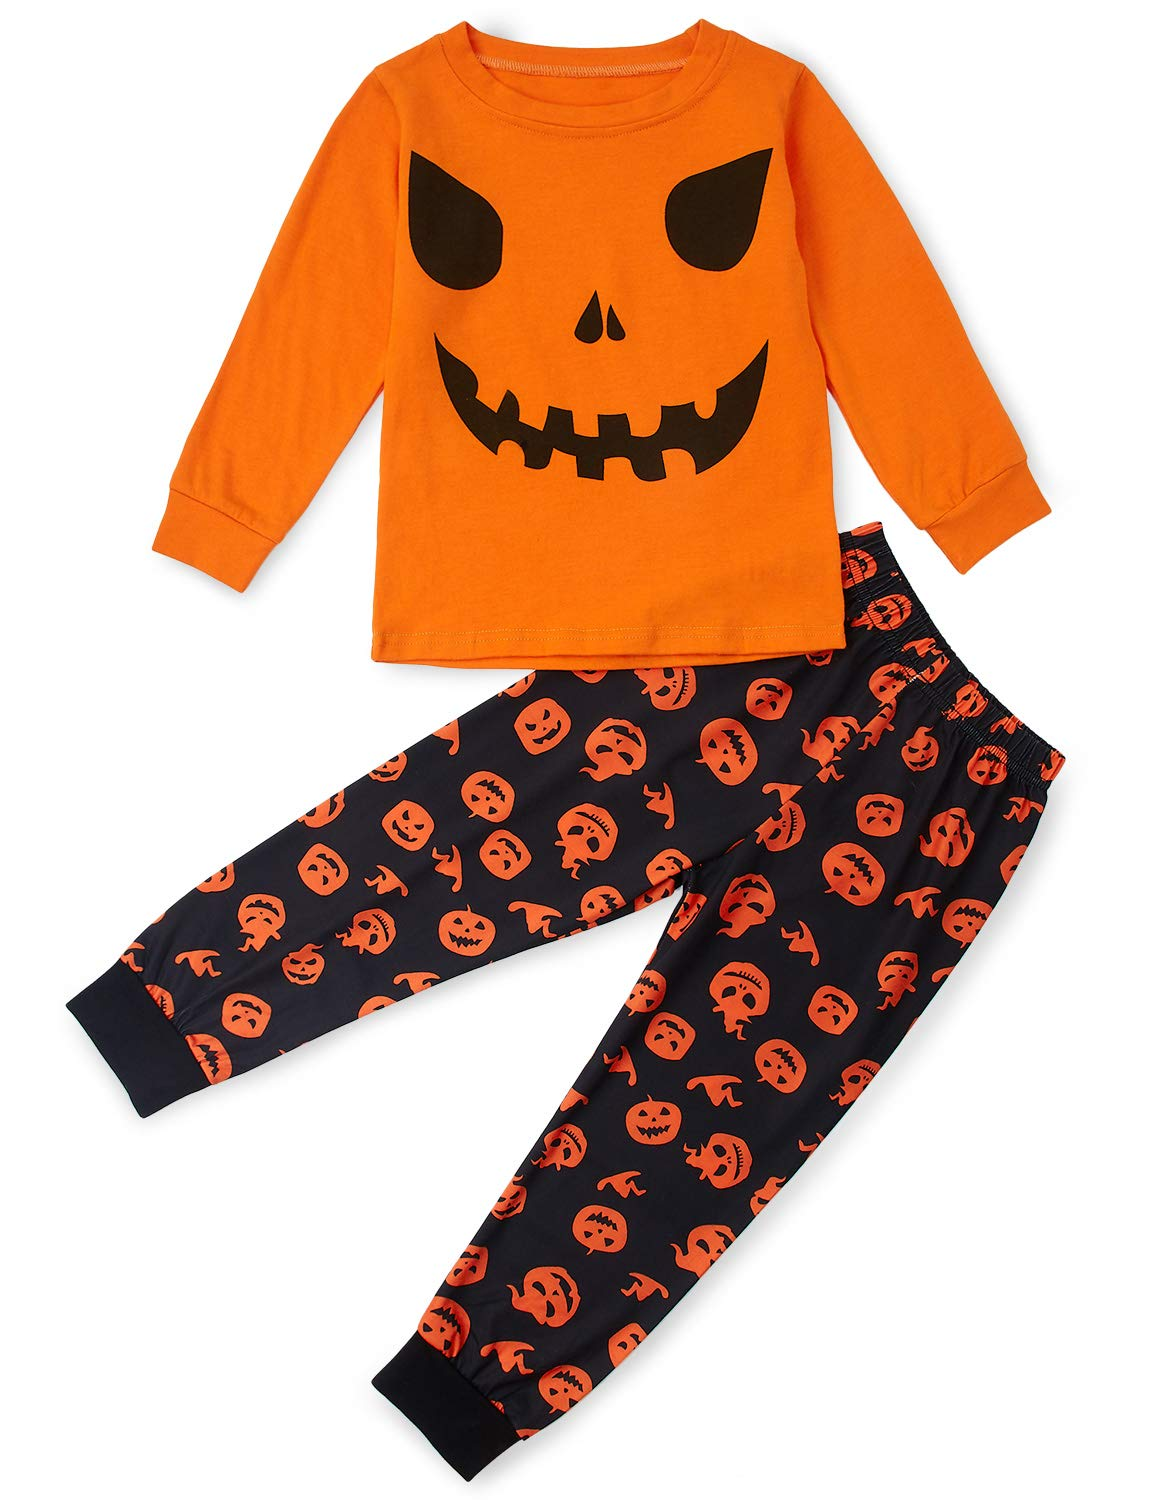 Halloween Pajamas for Boys Size 7,Size 6 Squash Print Personalized Family Loungewear for Girls Summer Autumn Loose Nightwear Overalls Orange 1 Set Size 7